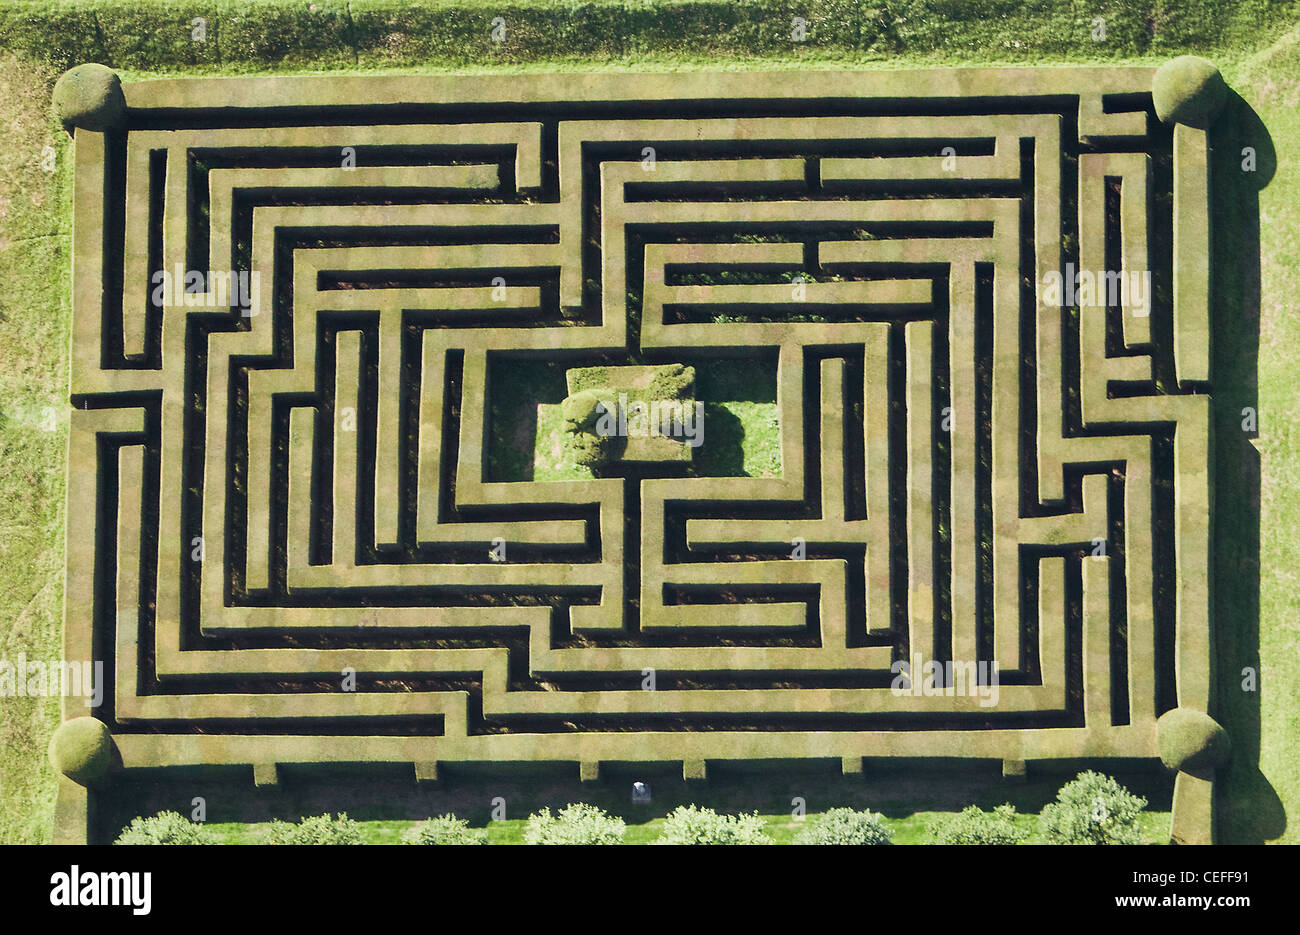 Aerial view of hedge maze - Stock Image